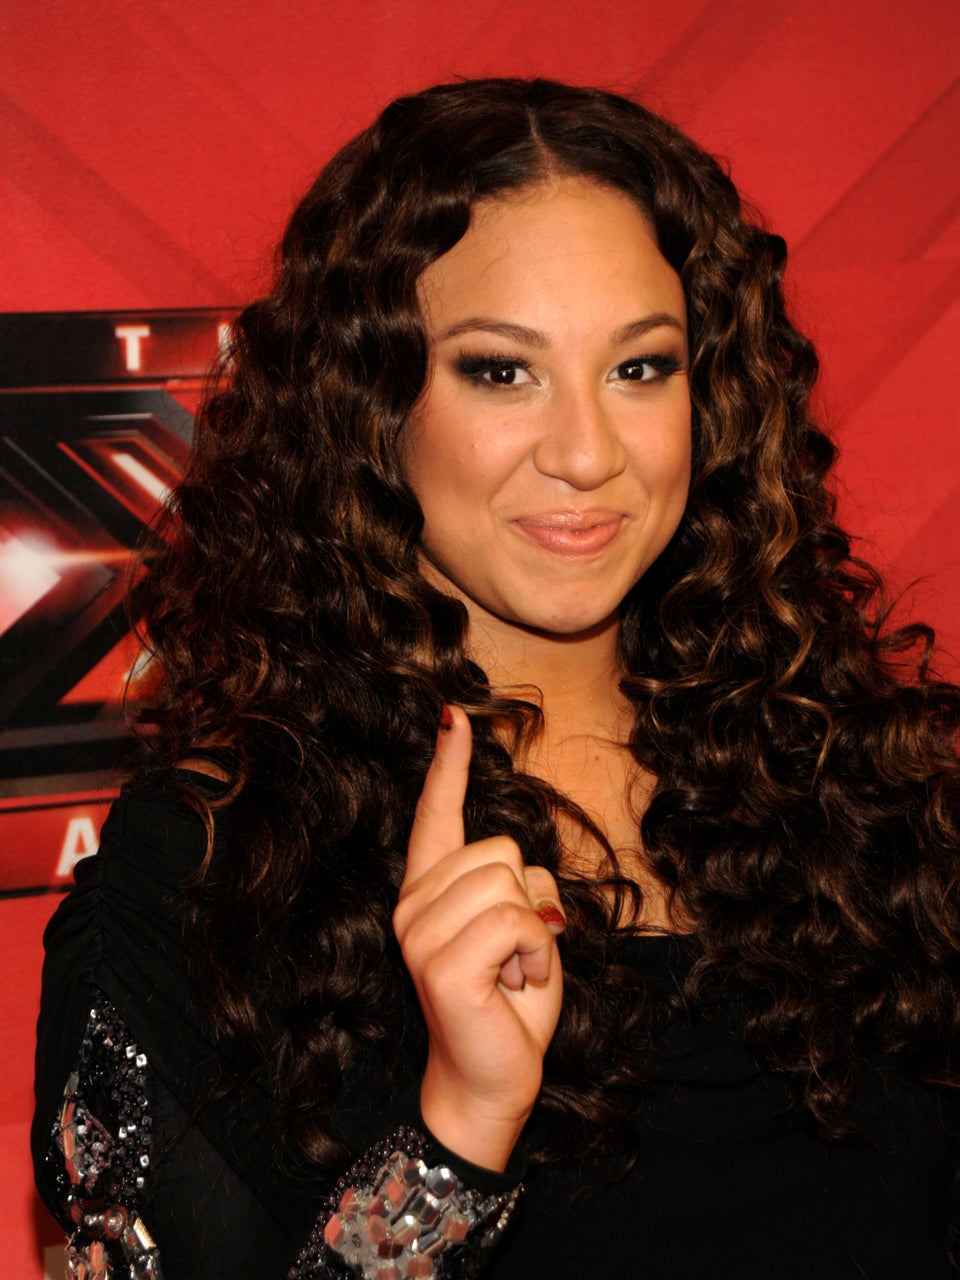 'X-Factor' Winner Melanie Amaro Signs with Epic Records